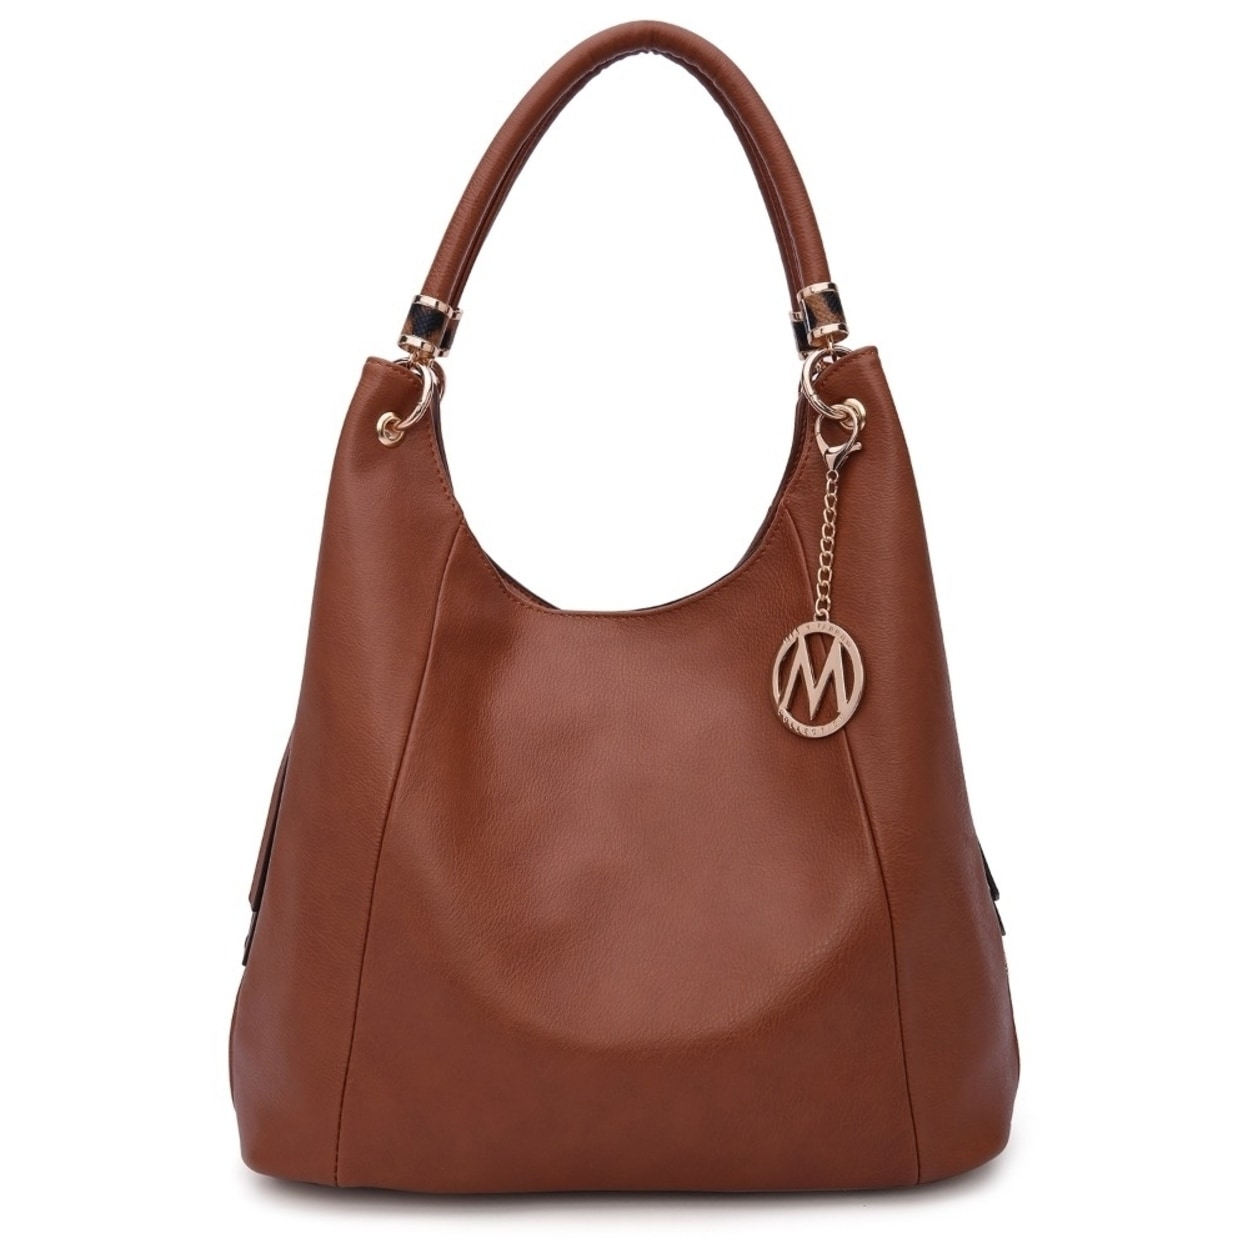 58a0958662b8 Shop MKF Collection April Designer Hobo Shoulder bag by Mia K Farrow - Free  Shipping Today - Overstock.com - 23488081